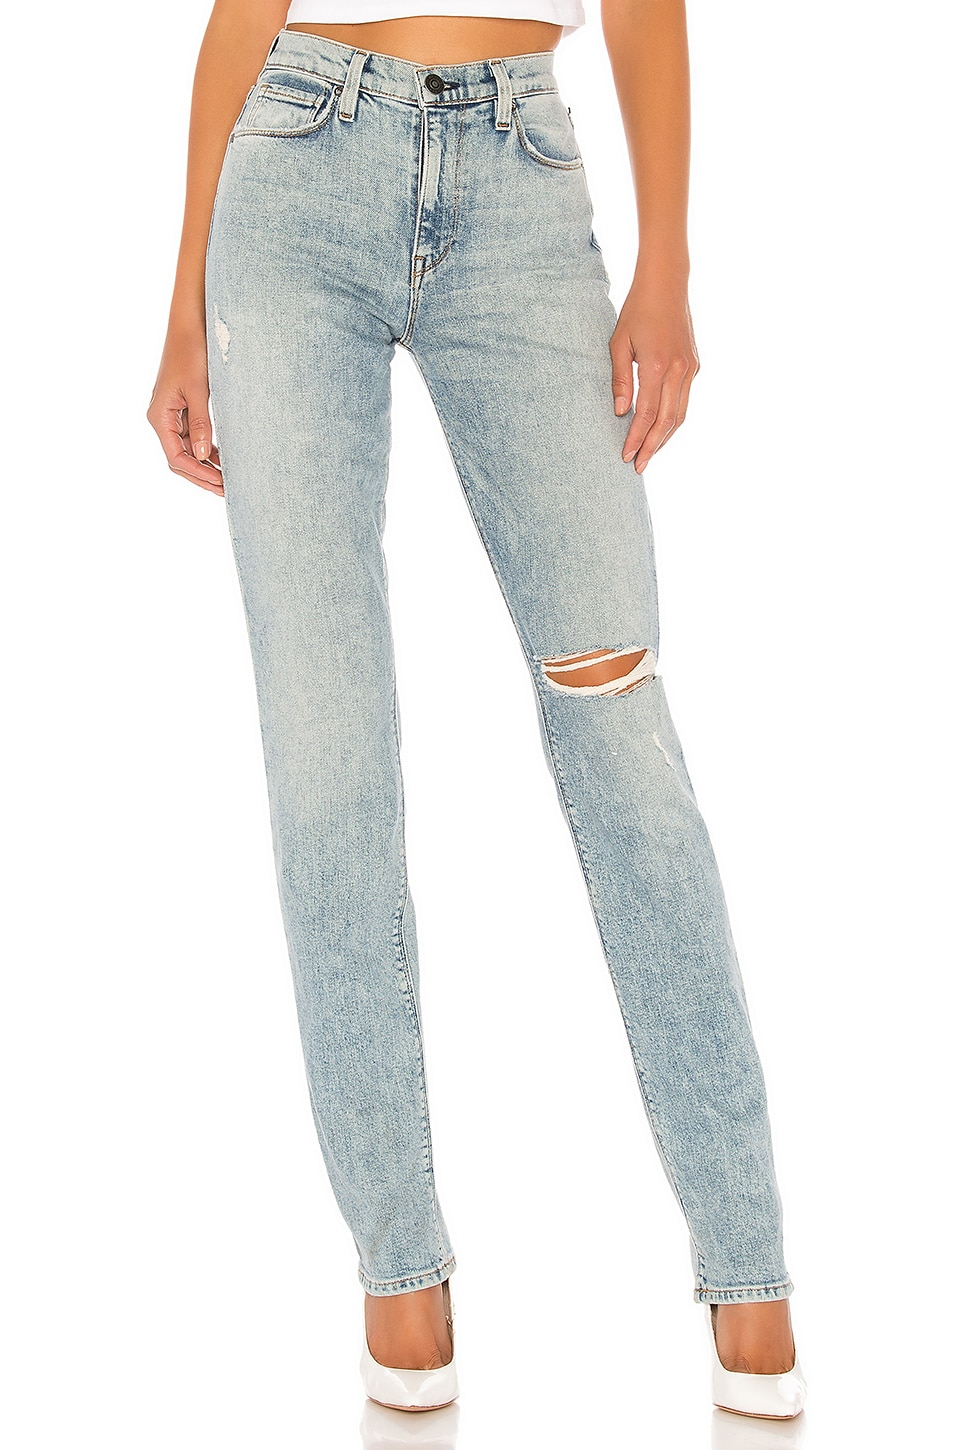 Hudson Jeans Holly High Rise Straight in Preface